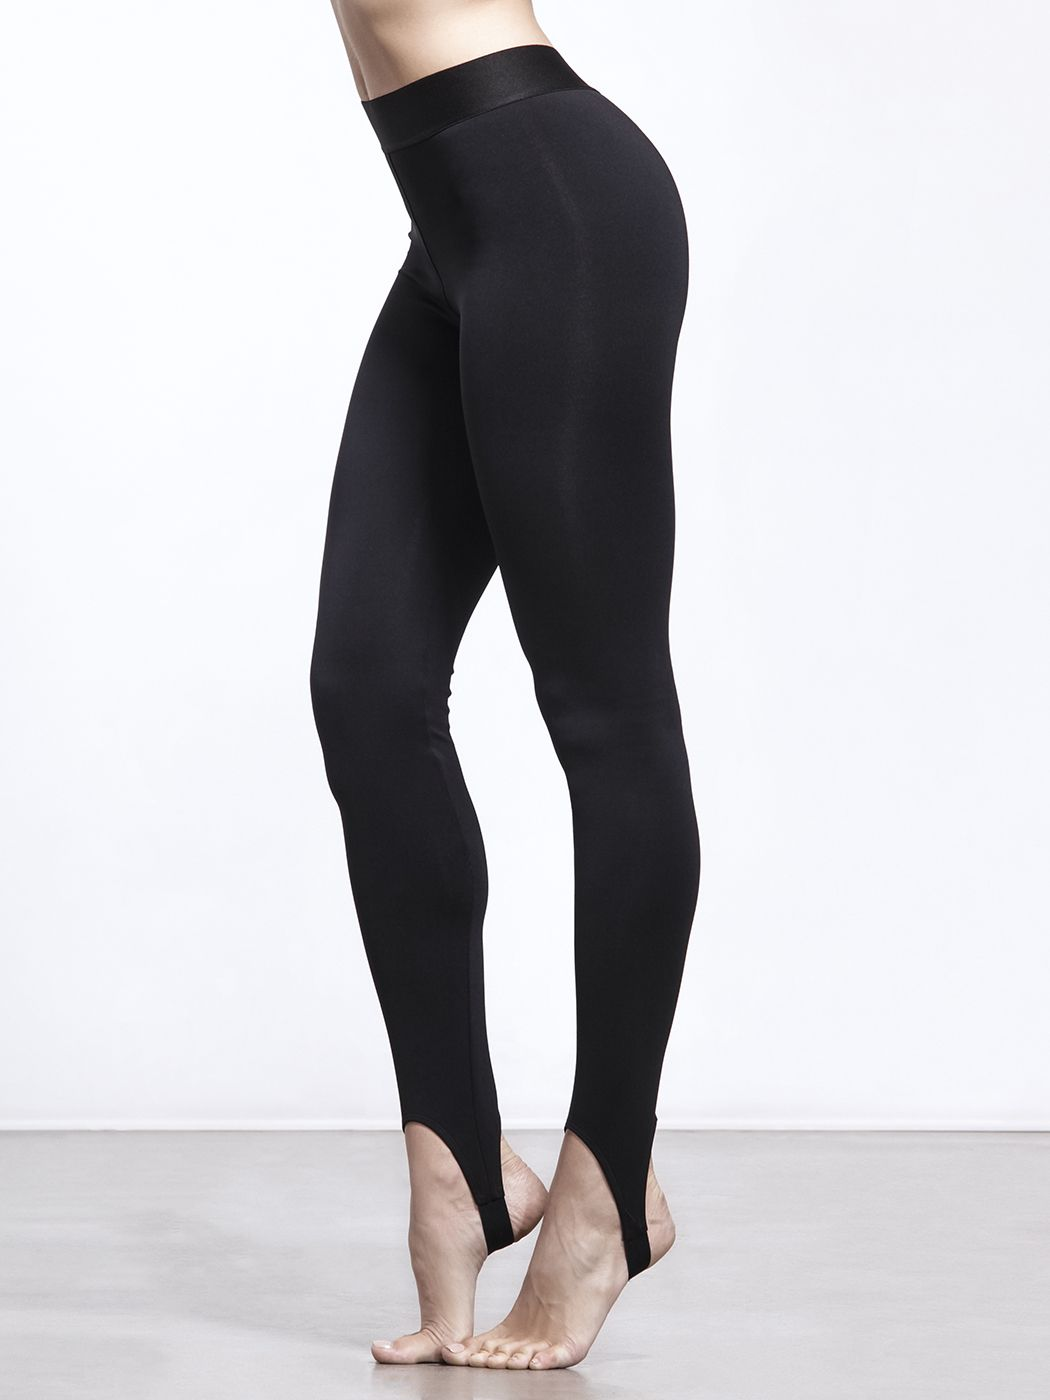 1127be27276103 heroine Sport Power Leggings http://www.dancefitnessapparel.com/leggings/